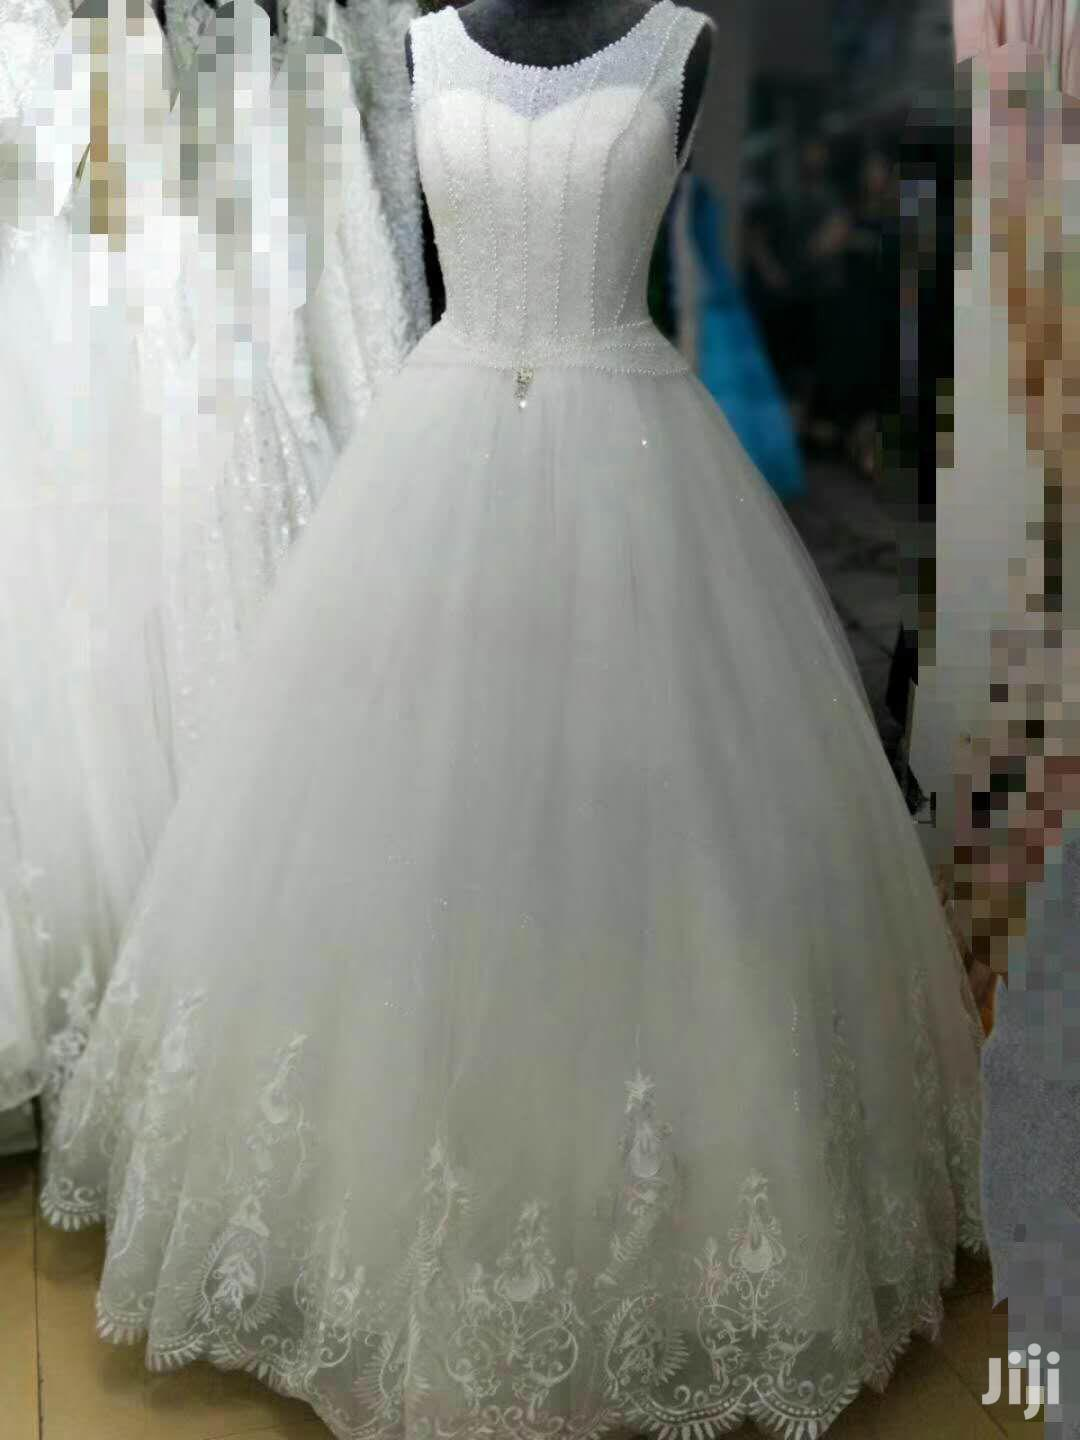 Wedding Gowns And Changing Dresses